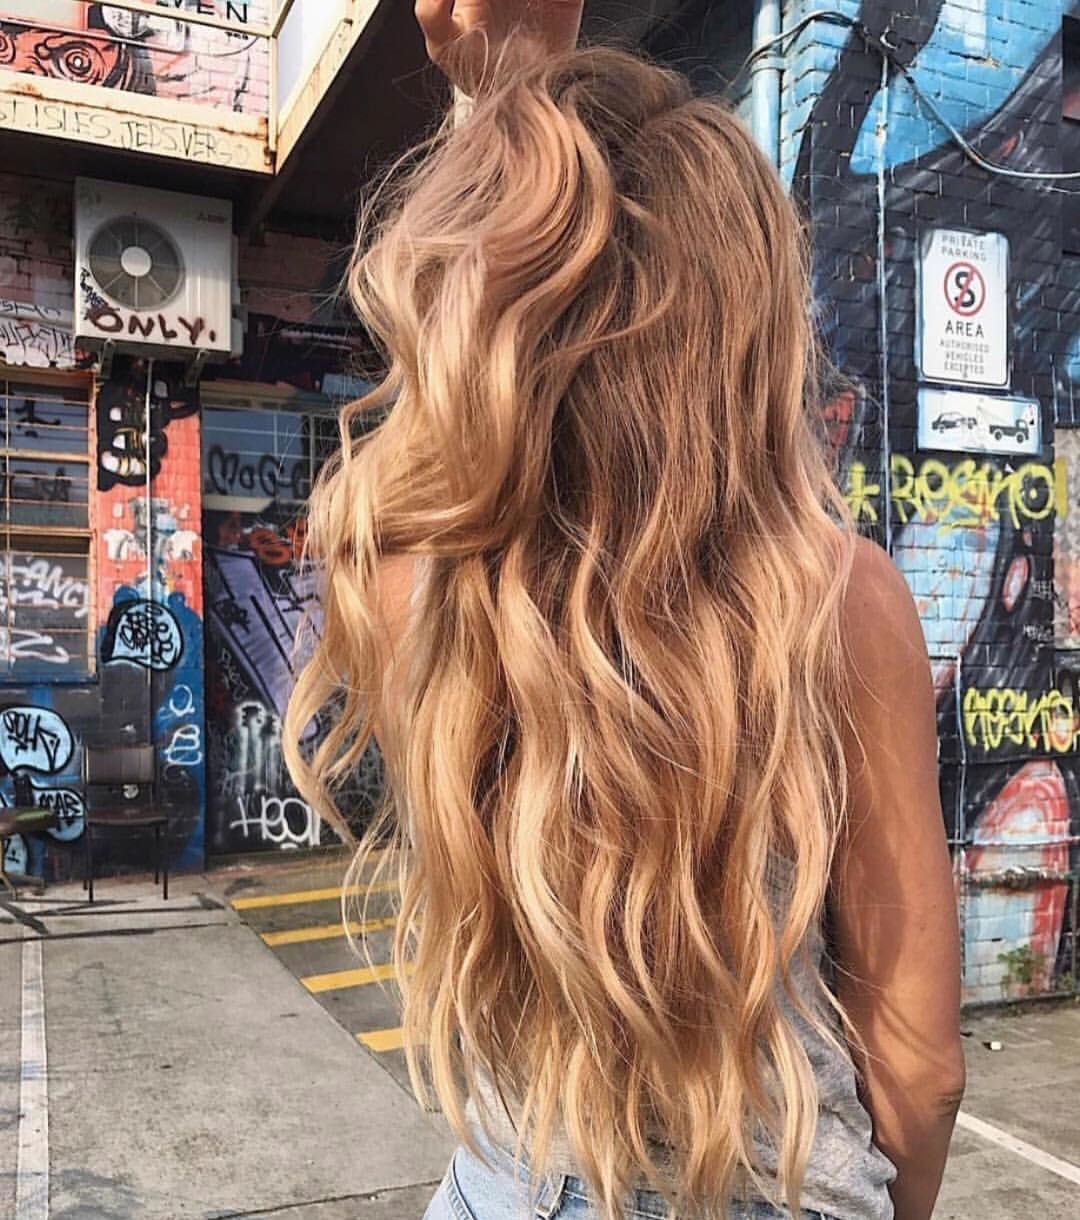 Great hair doesn't happen by chance. It happens by appointment 👌✨ • via @headstudio • #besthairever #hairgasm #glamhair #mermaidhair